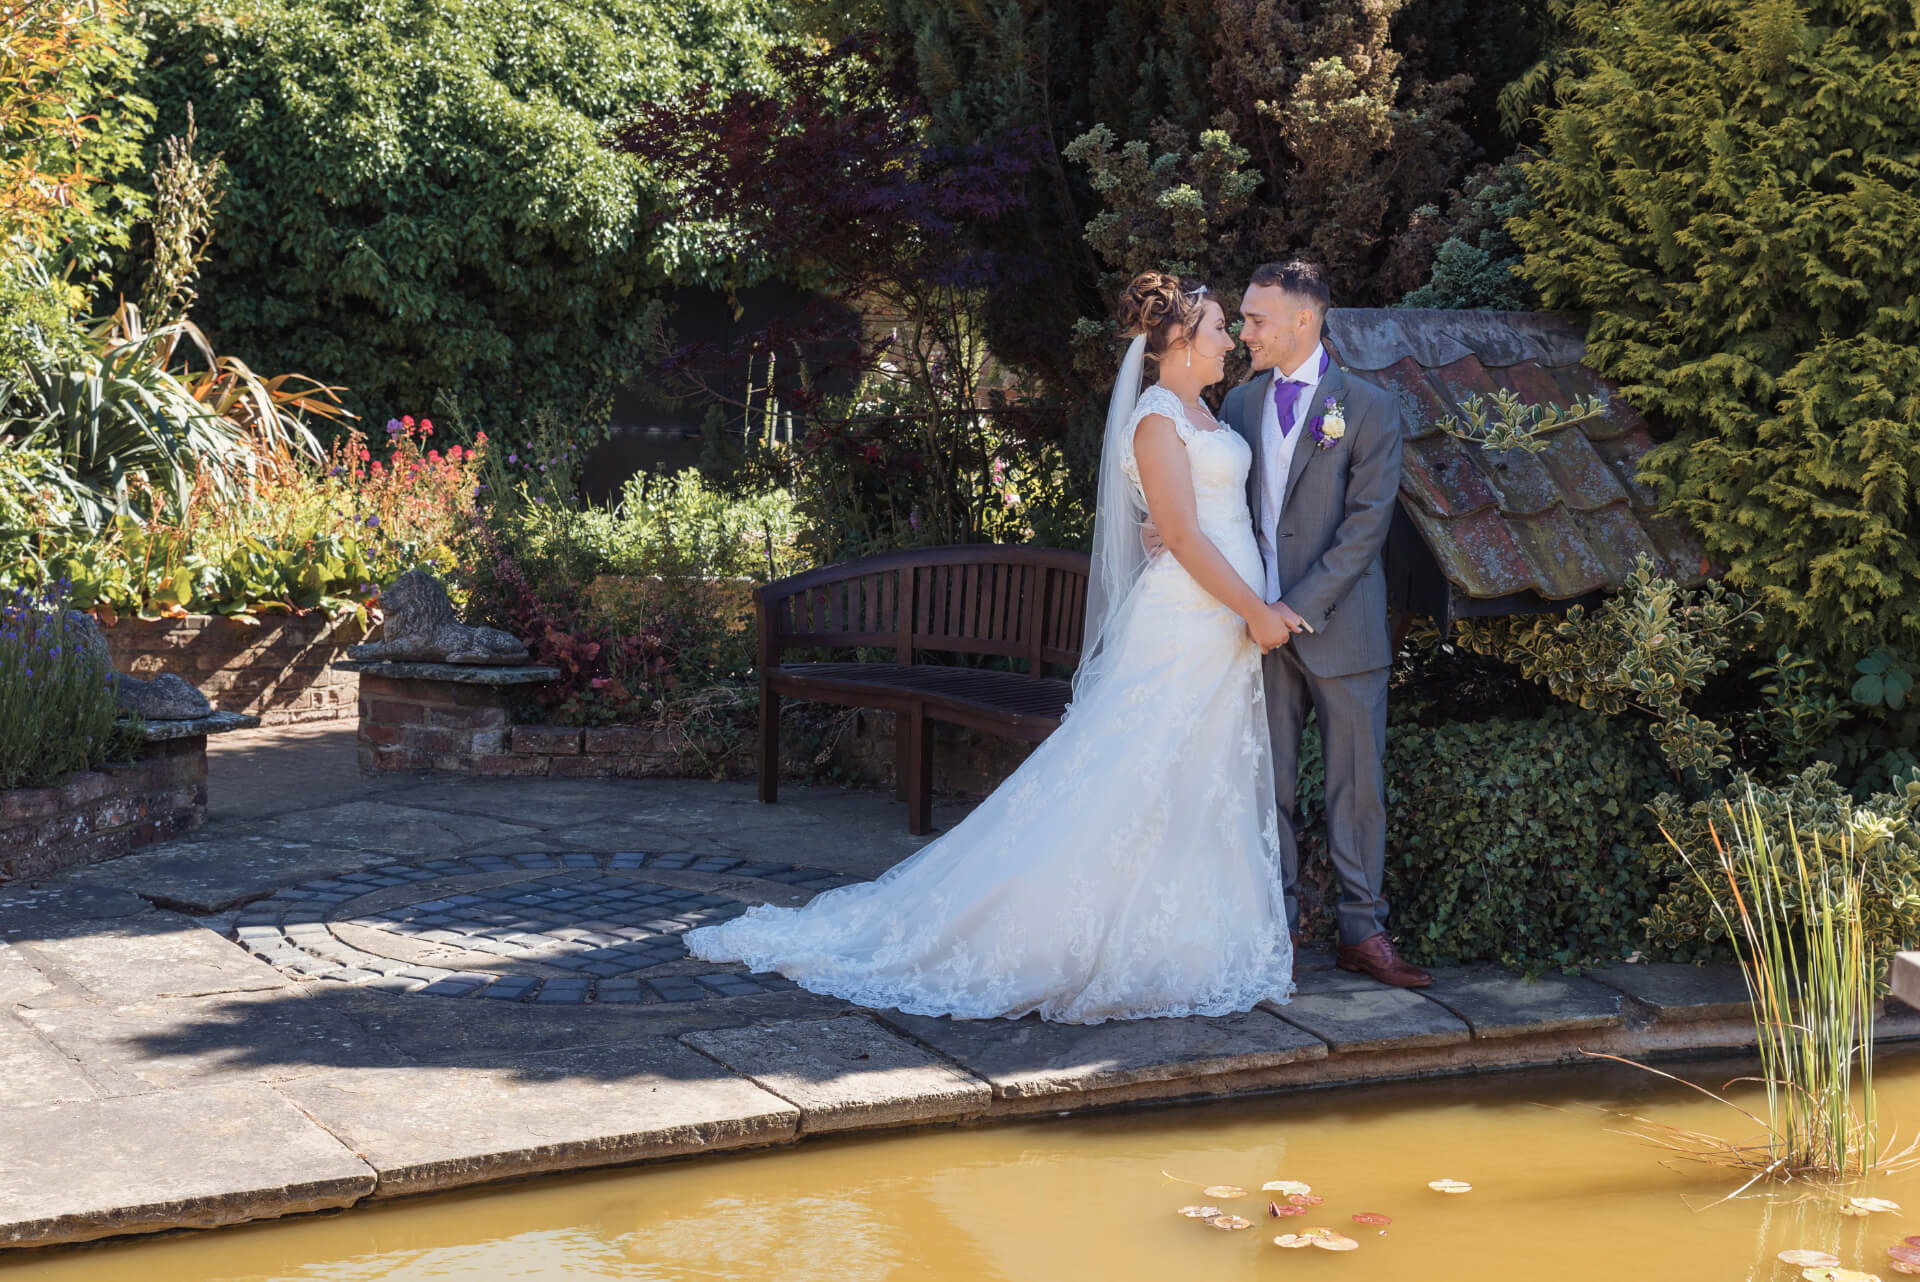 Portrait of Bride and Groom at Whaplode Manor Gardens, Spalding - by Lincolnshire wedding photogrpaher Slife of Life